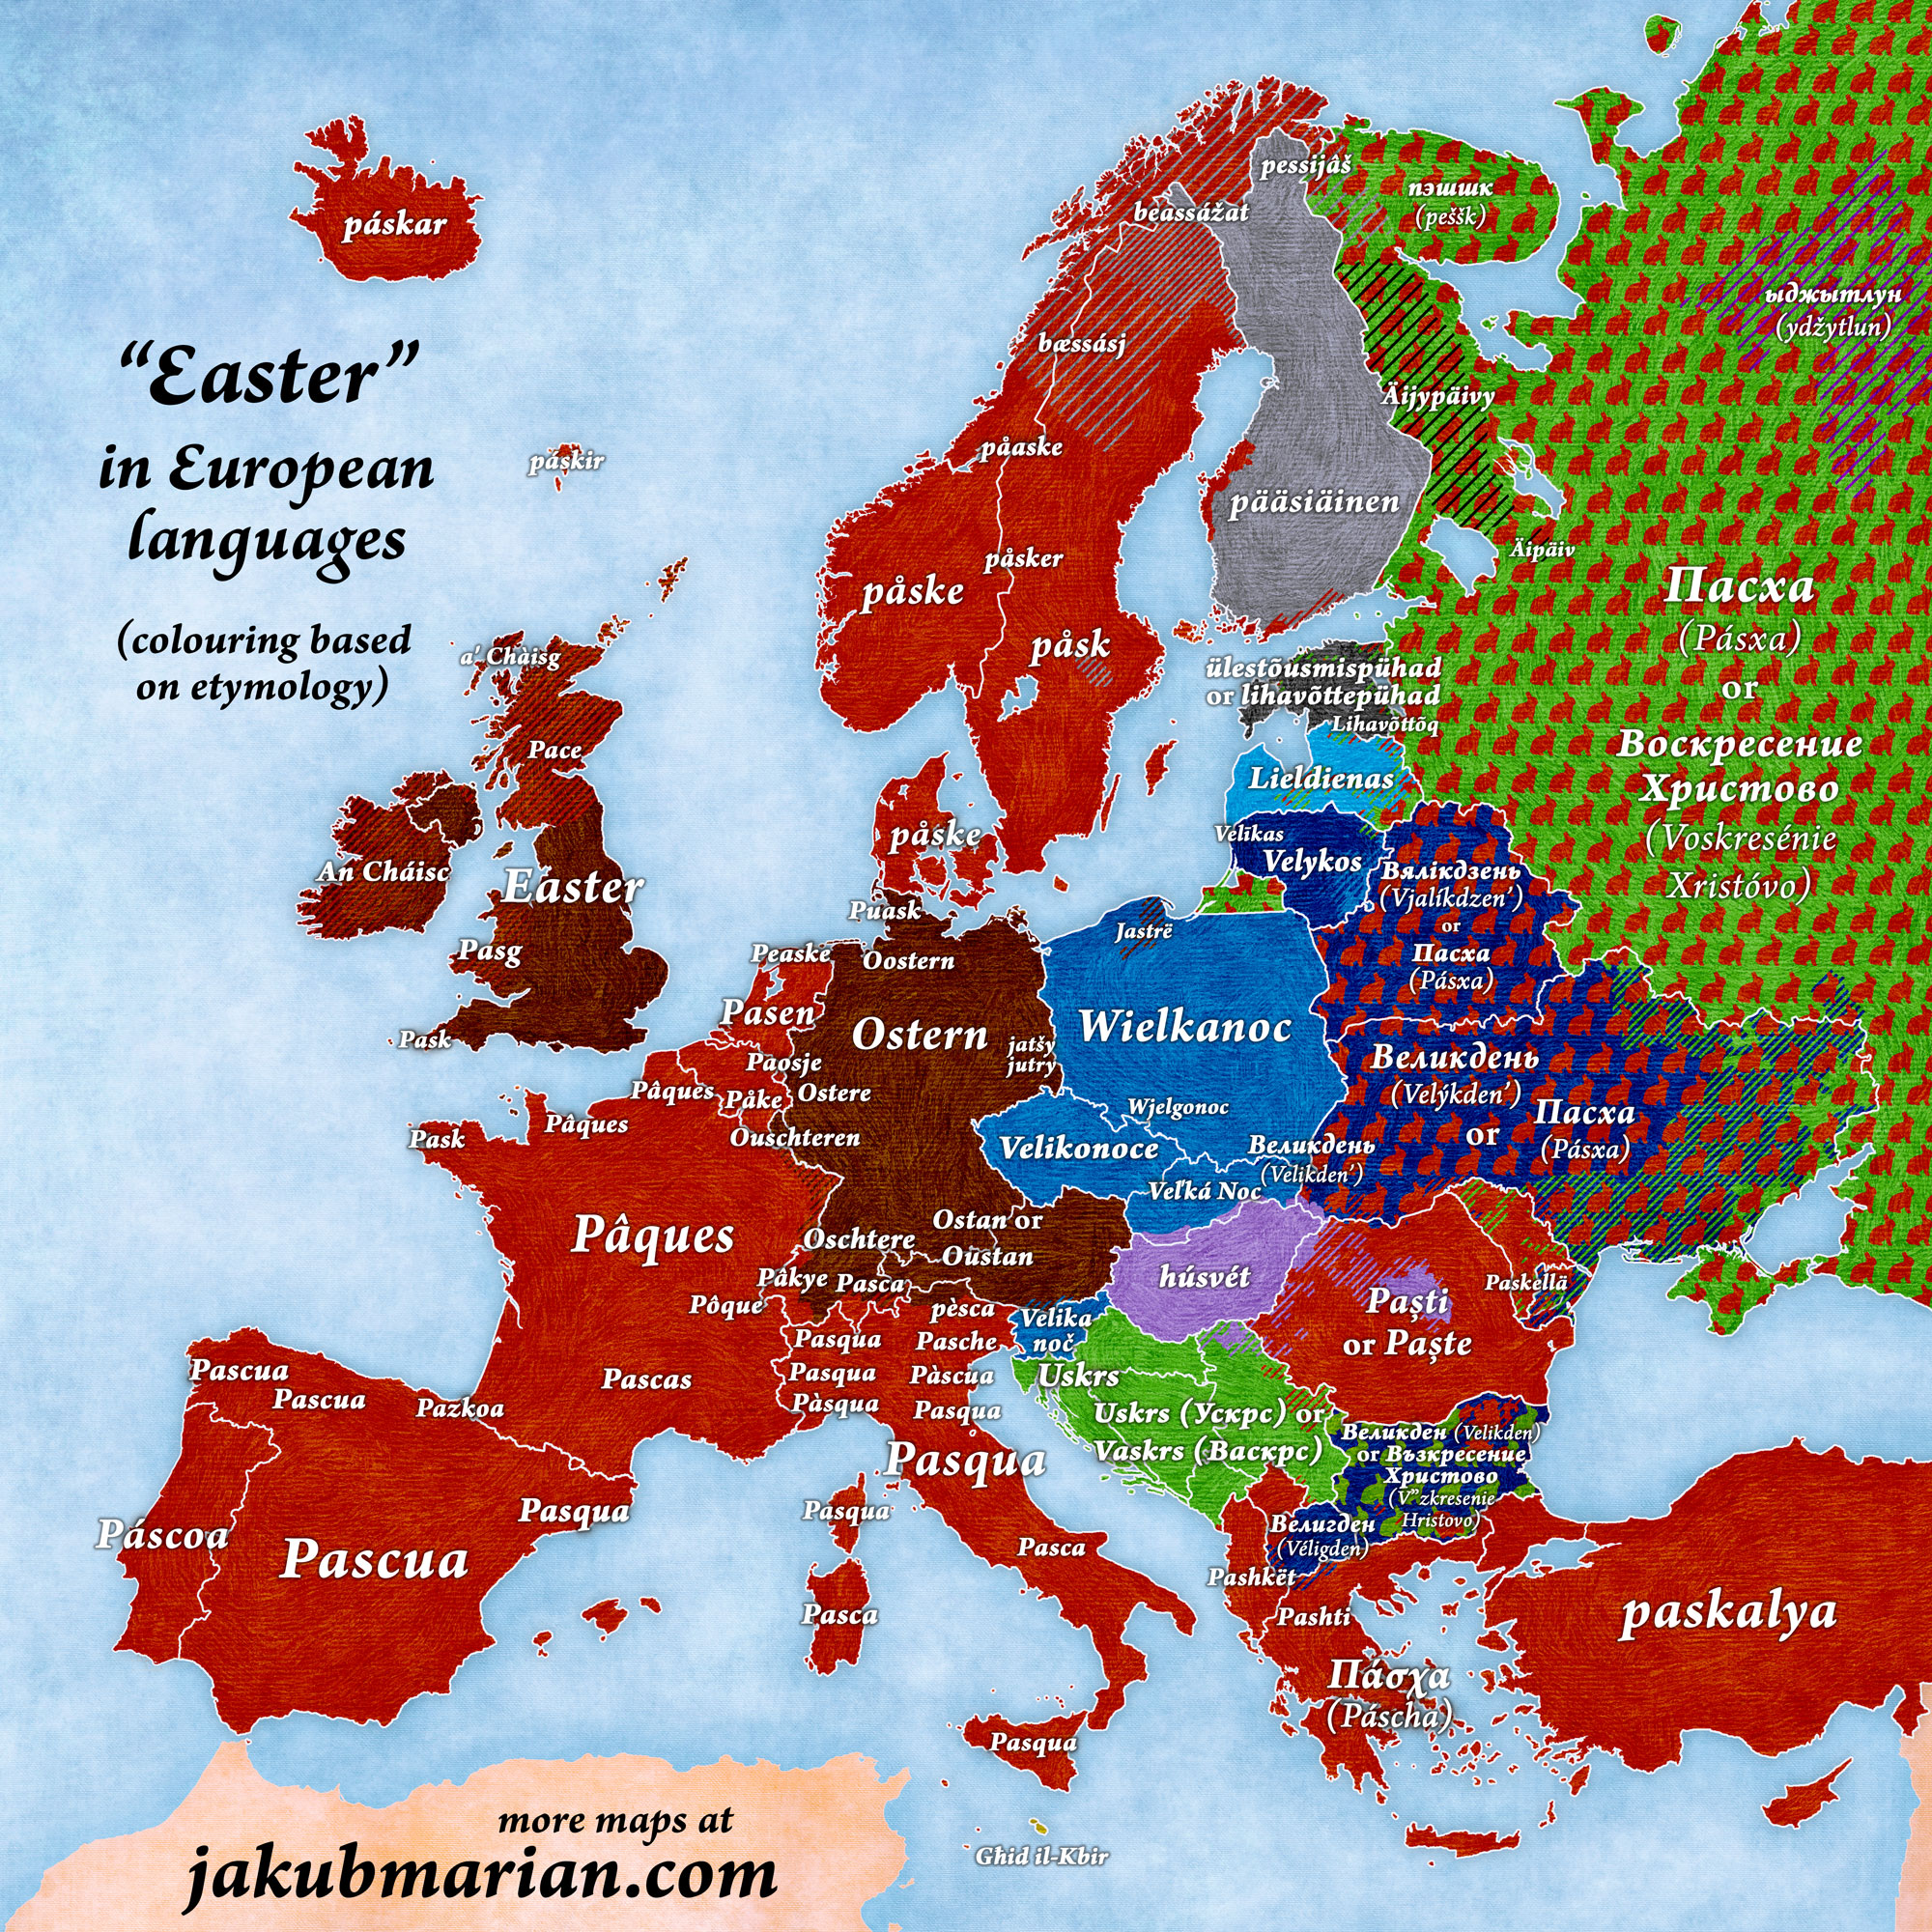 easter-european-languages.jpg?new